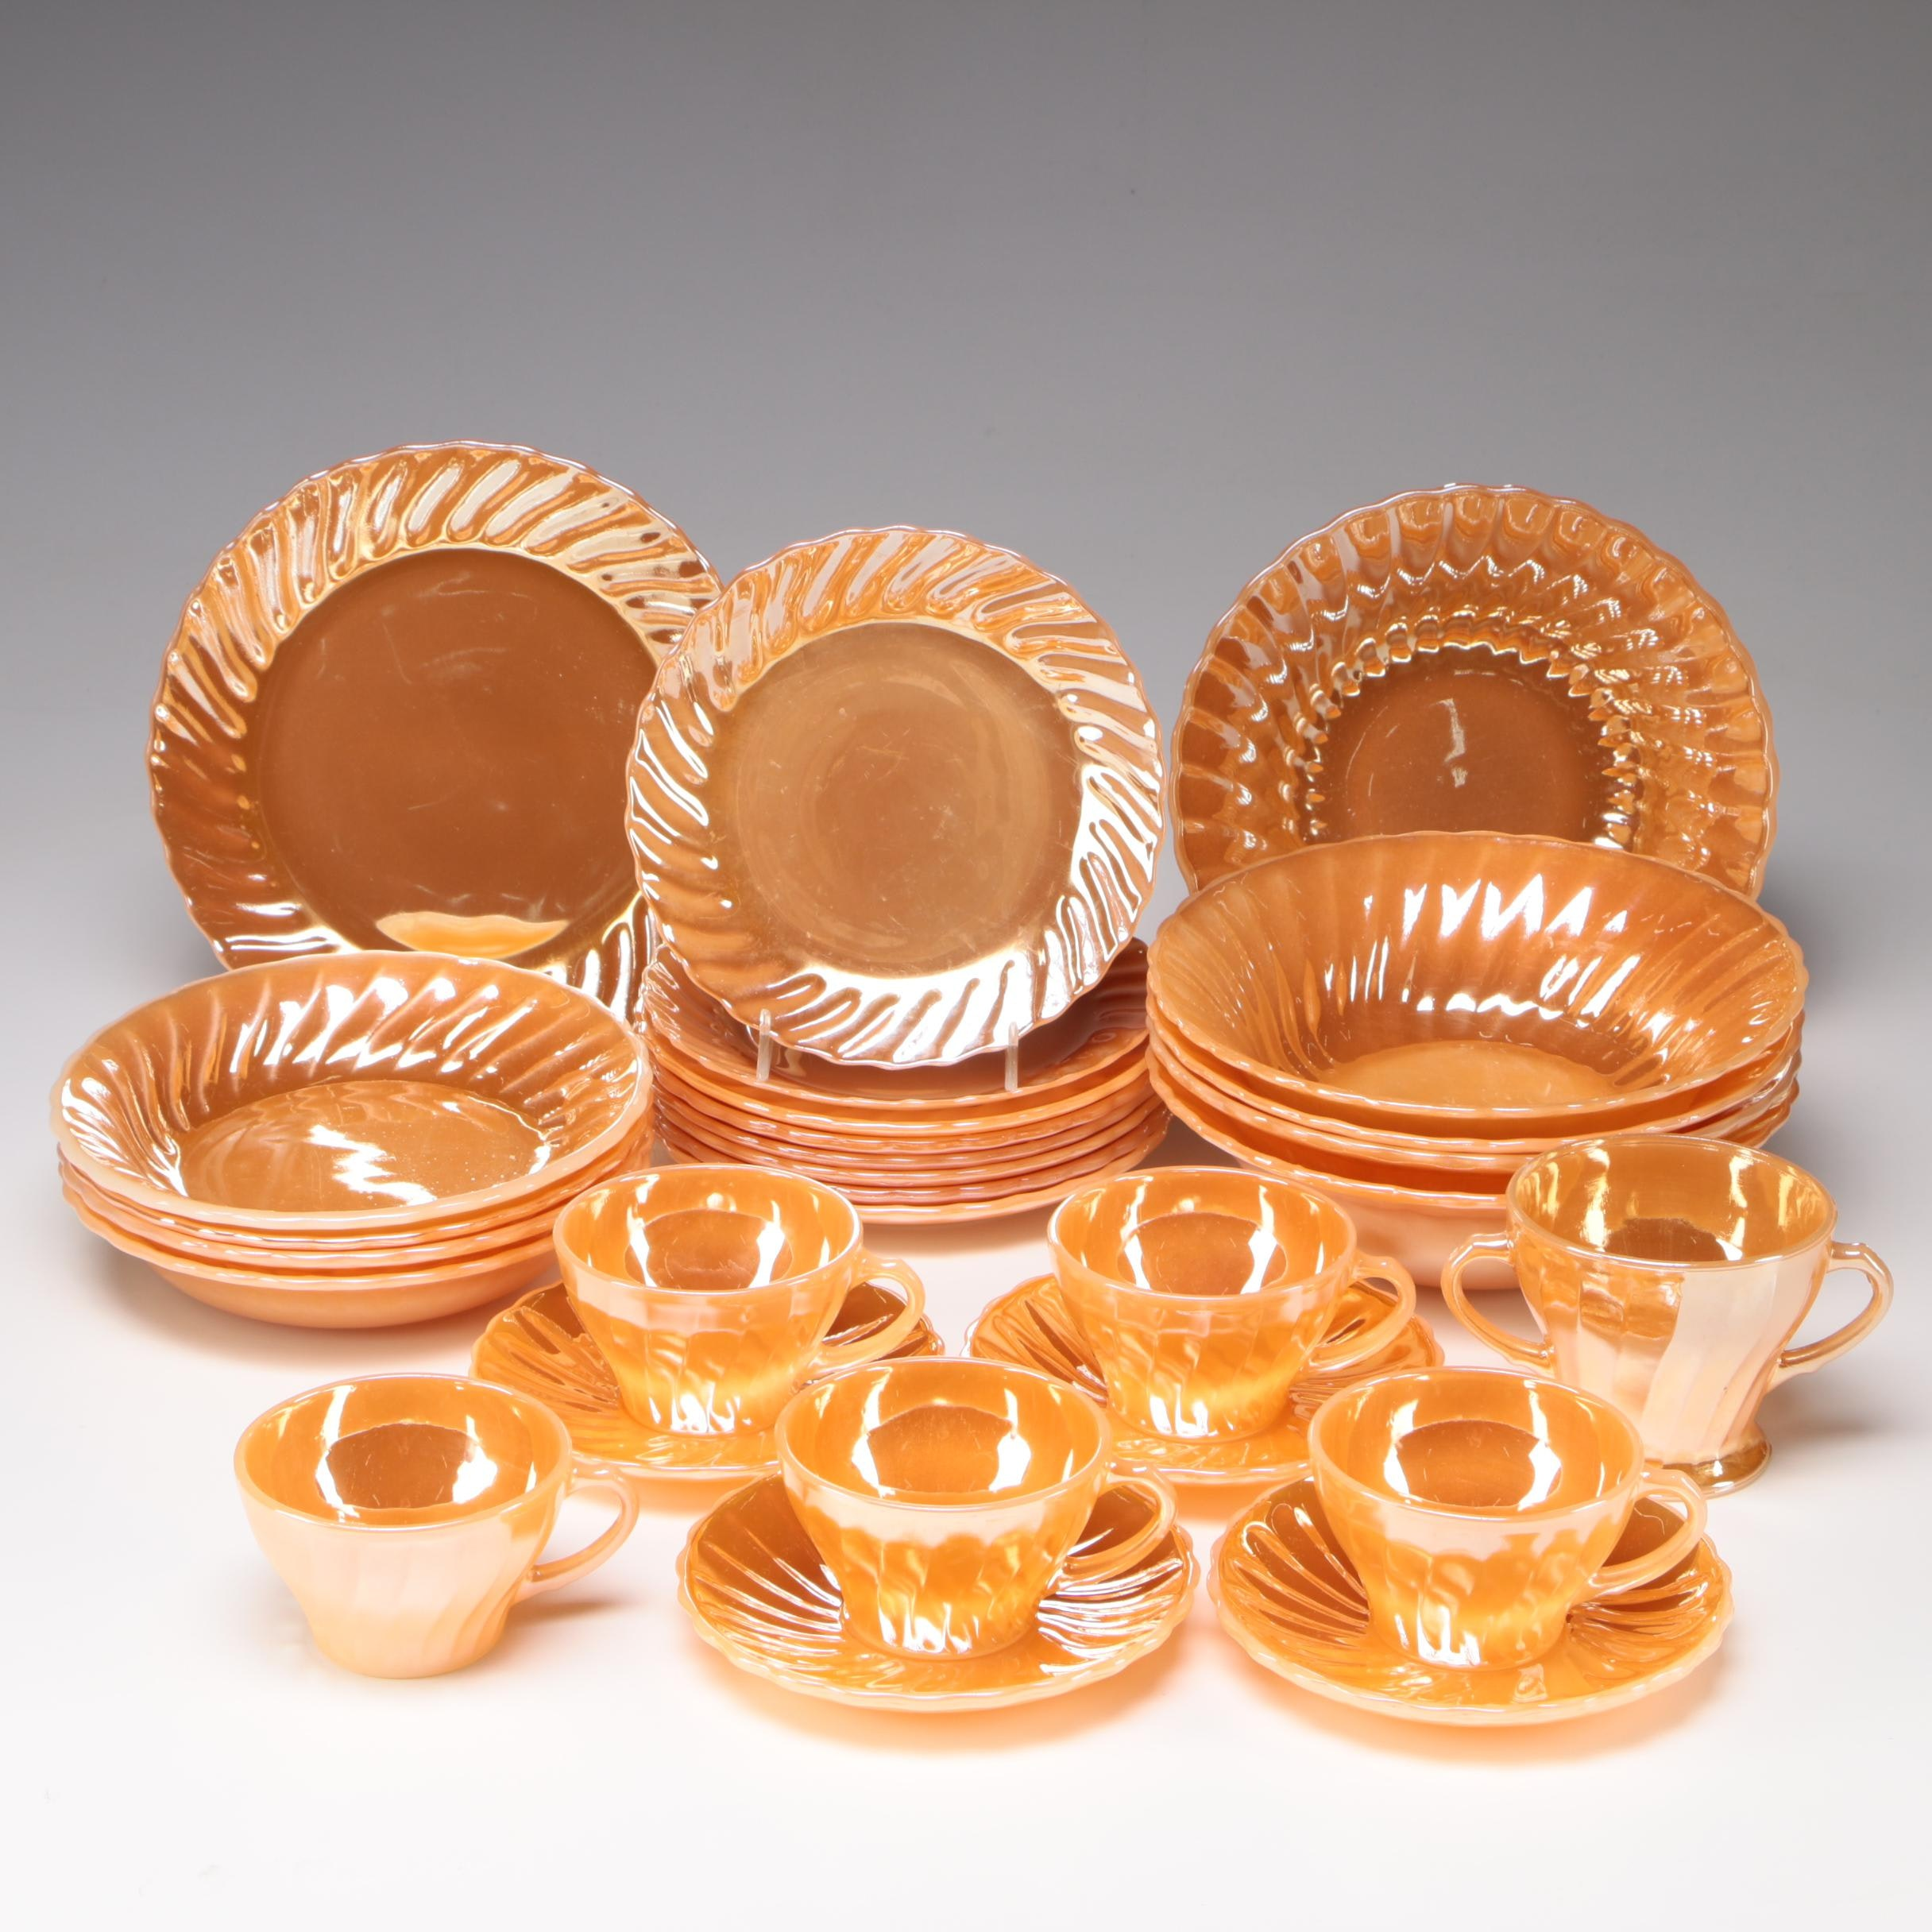 "Anchor Hocking Fire-King ""Peach Lustre Swirl"" Dinnerware, 1950s/1960s"